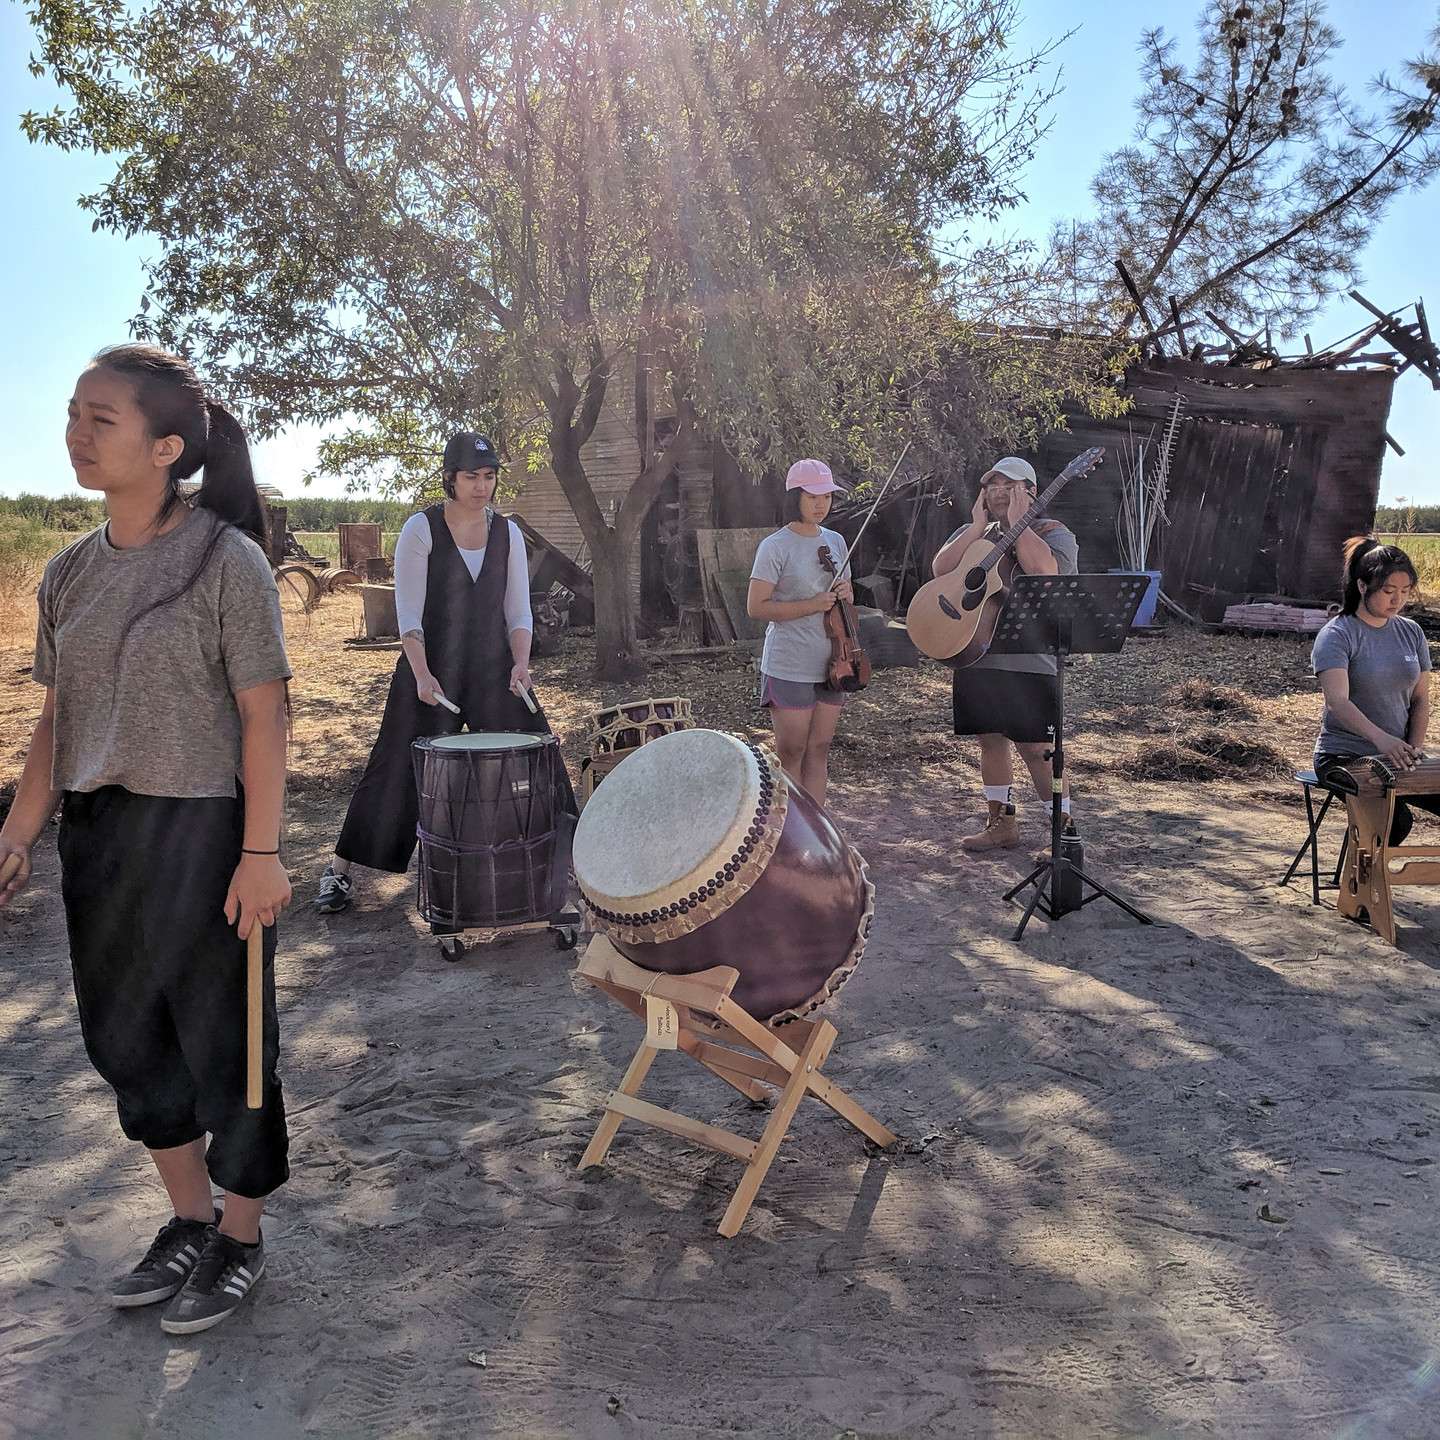 """Picture of performers doing a run-through of their piece, """"Ways of Being"""". Set up includes two taiko players in position; a violinist and guitarist reading music from a stand; and a person seated playing a koto. Behind them is worn down shack and an expanse of field."""